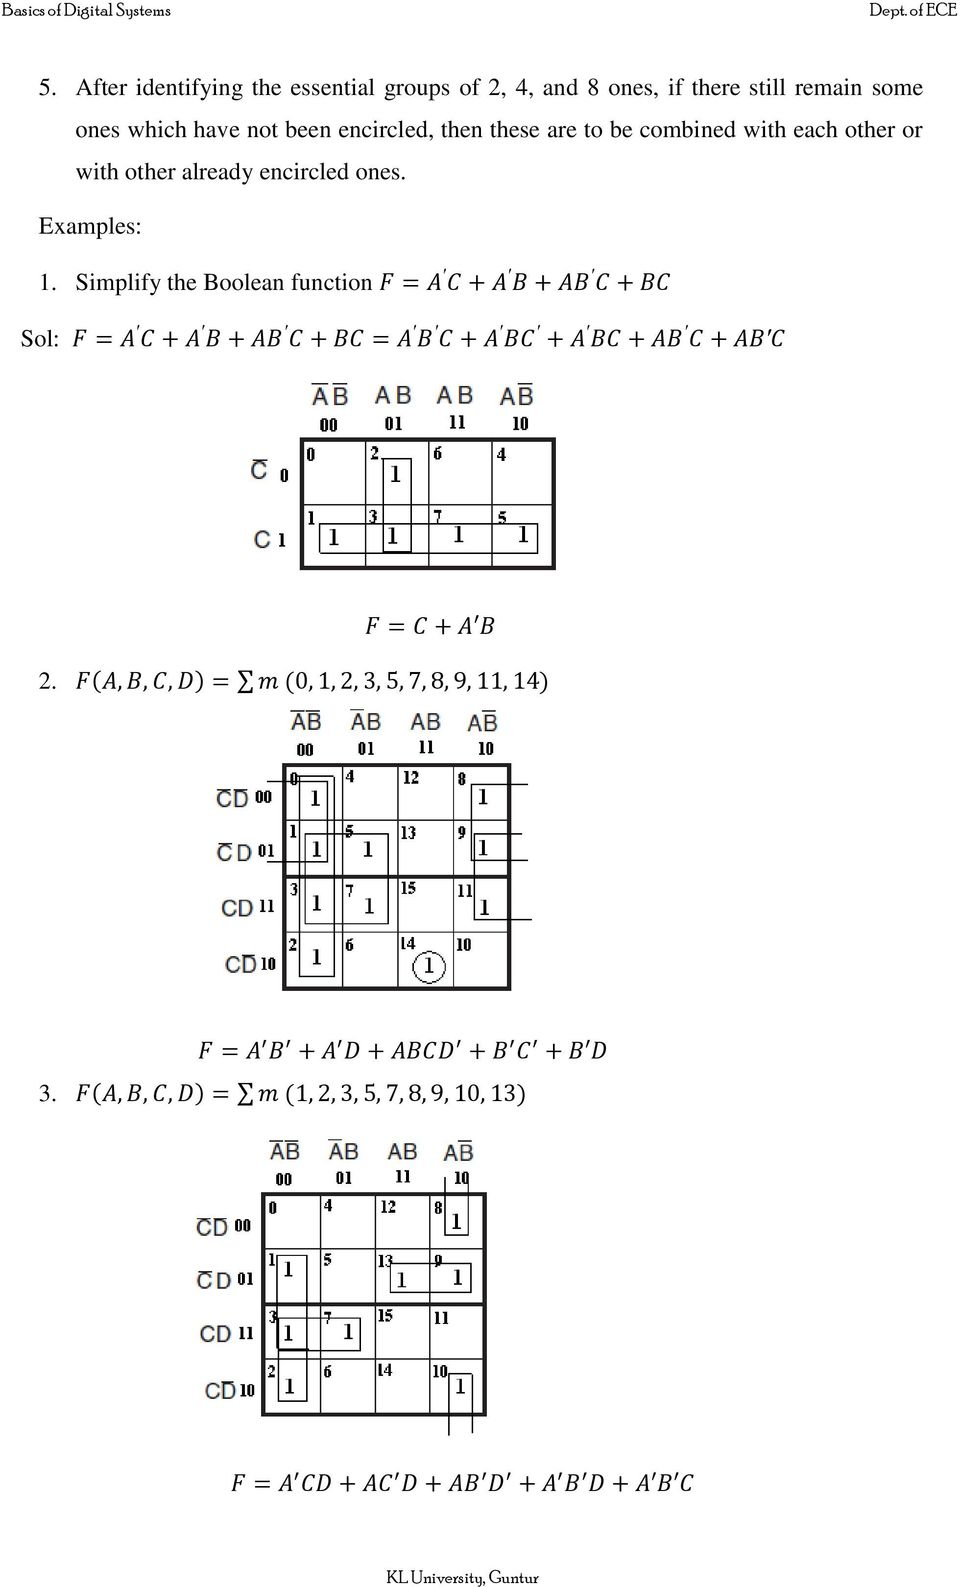 Boolean Algebra Logic Gates Pdf The Simplified Functions For Two Oututs Of Full Simplify Function Sol 2 3 These Are To Be Combined With Each Other Or Already